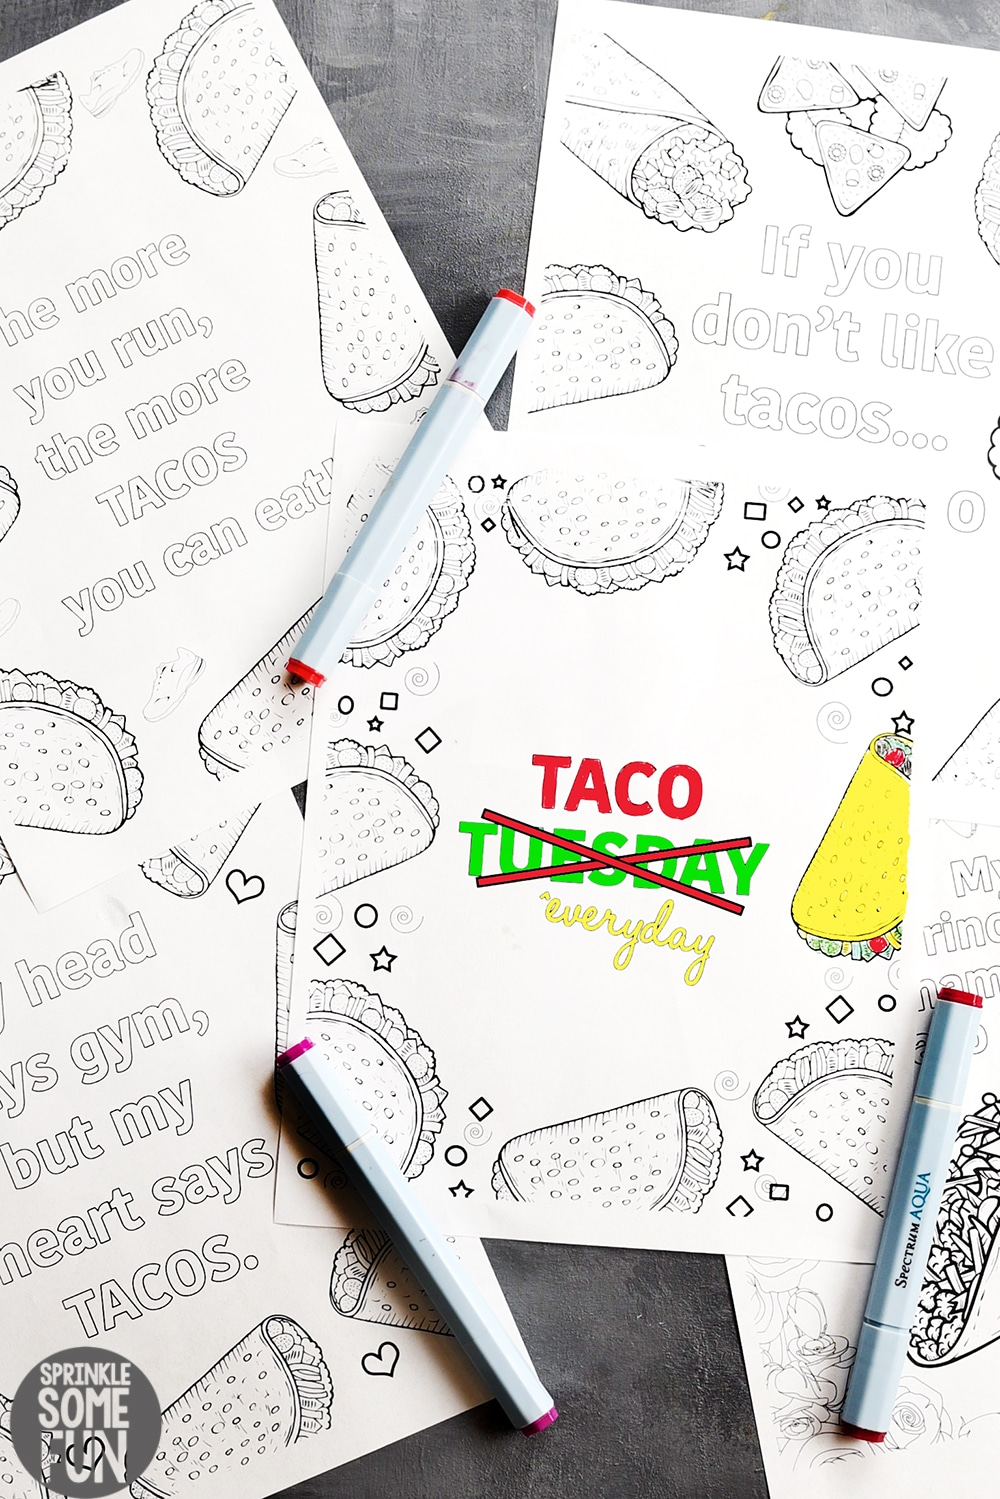 5 free funny taco quotes coloring pages sprinkle some fun, love quotes coloring pages